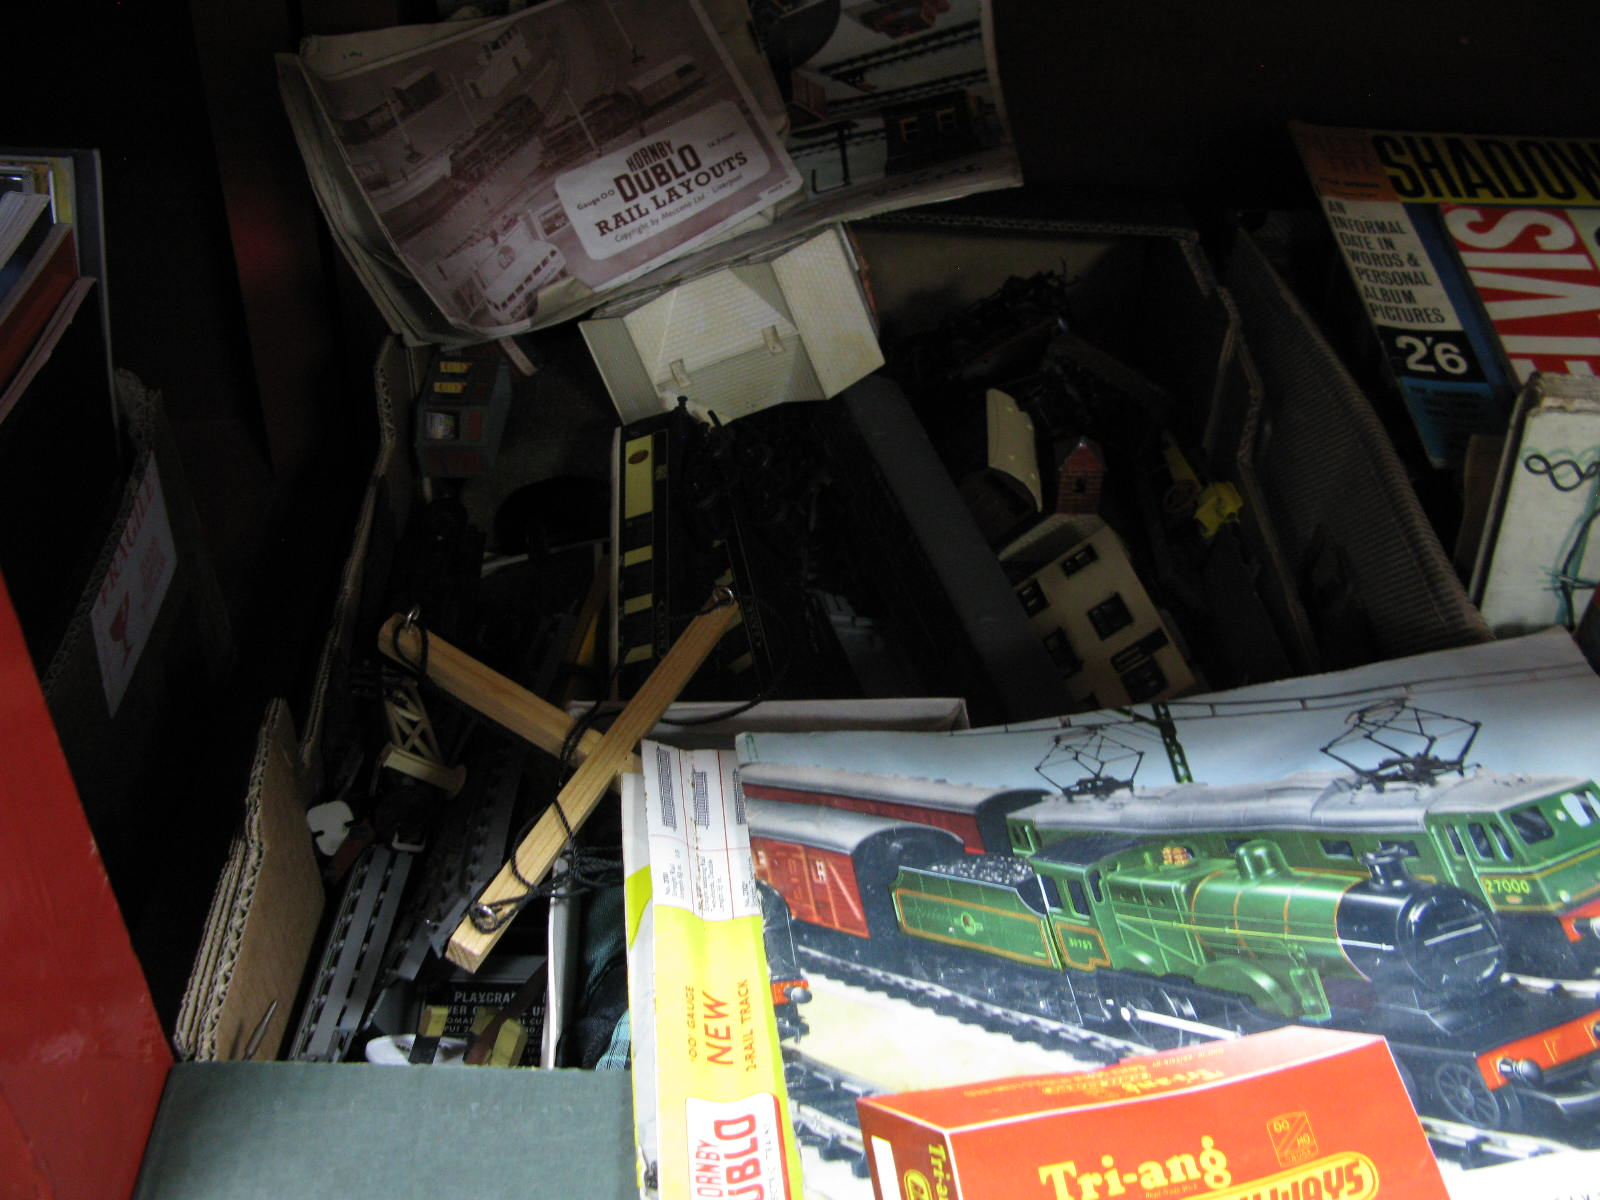 Lot 1032 - A Quantity of 'OO' Hornby Dublo Carriages, loco, rolling stock, track and layout, transformers